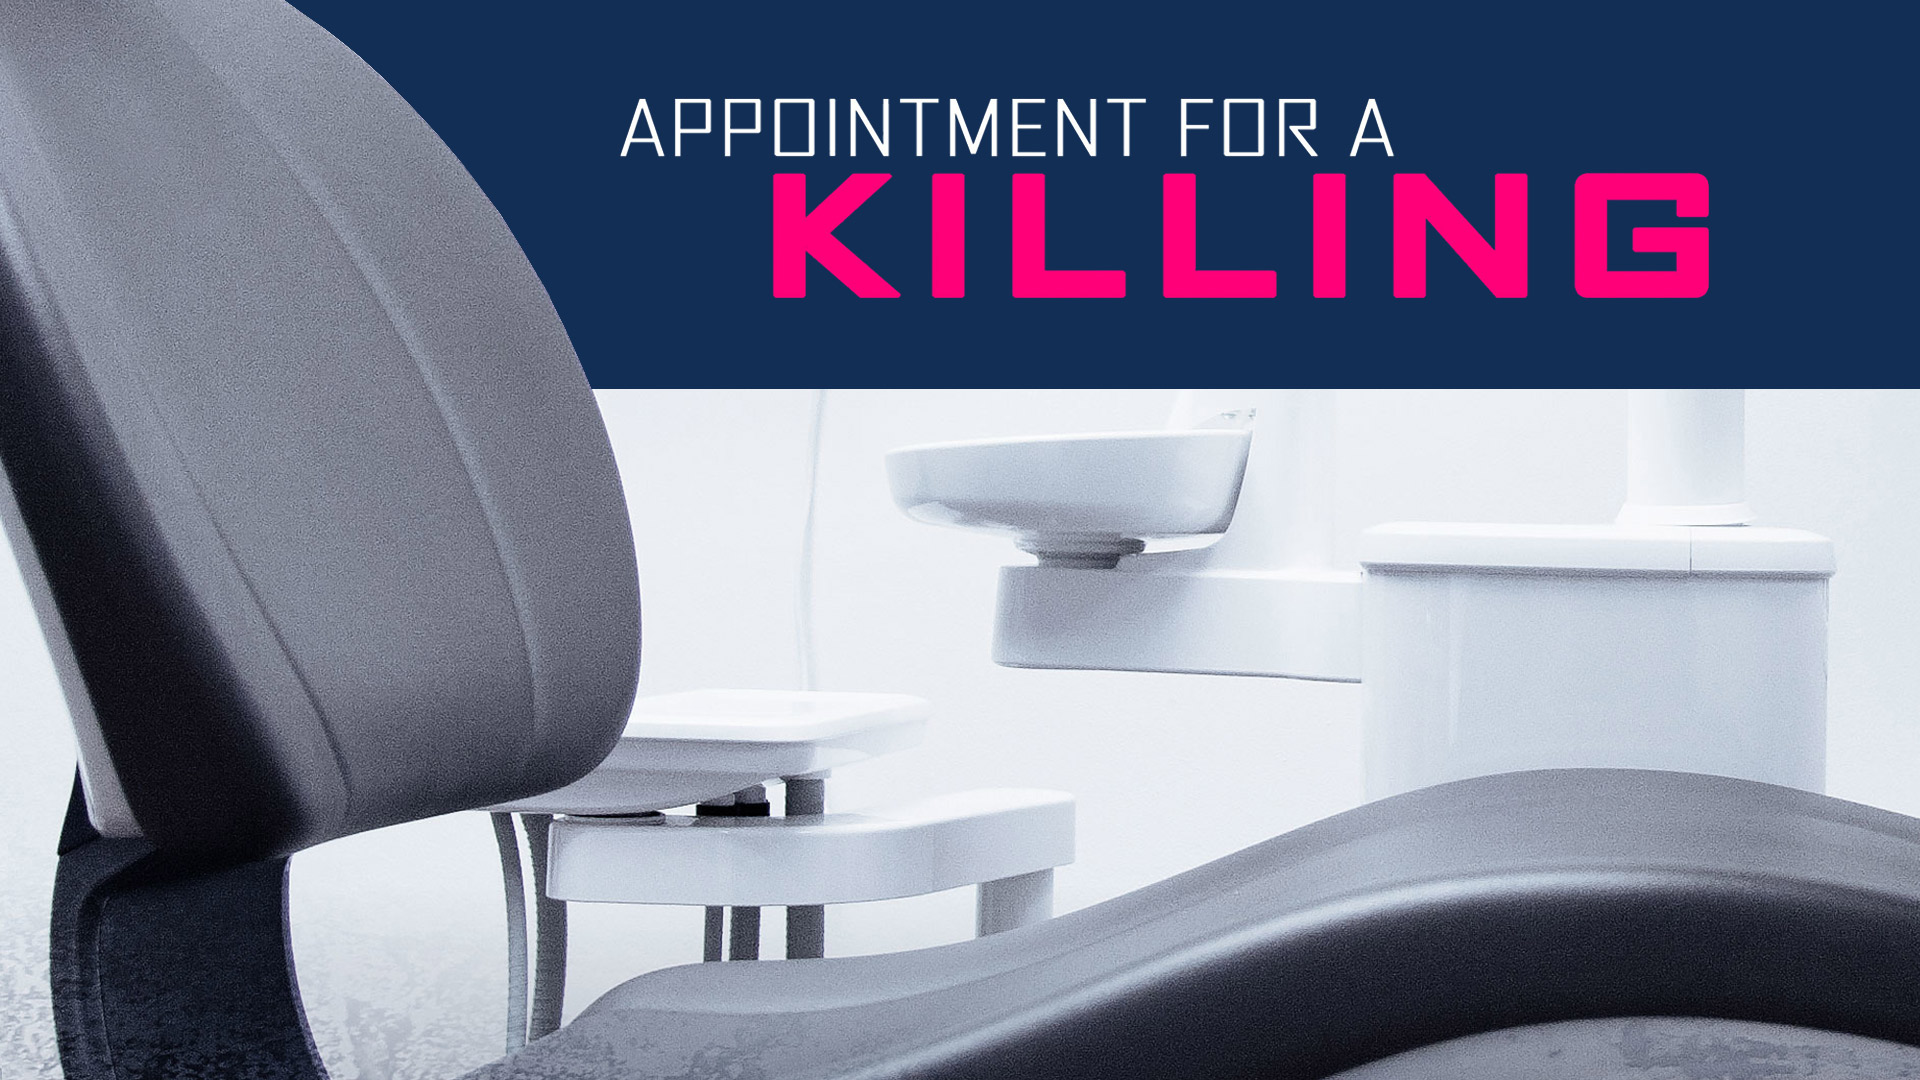 Appointment for a Killing